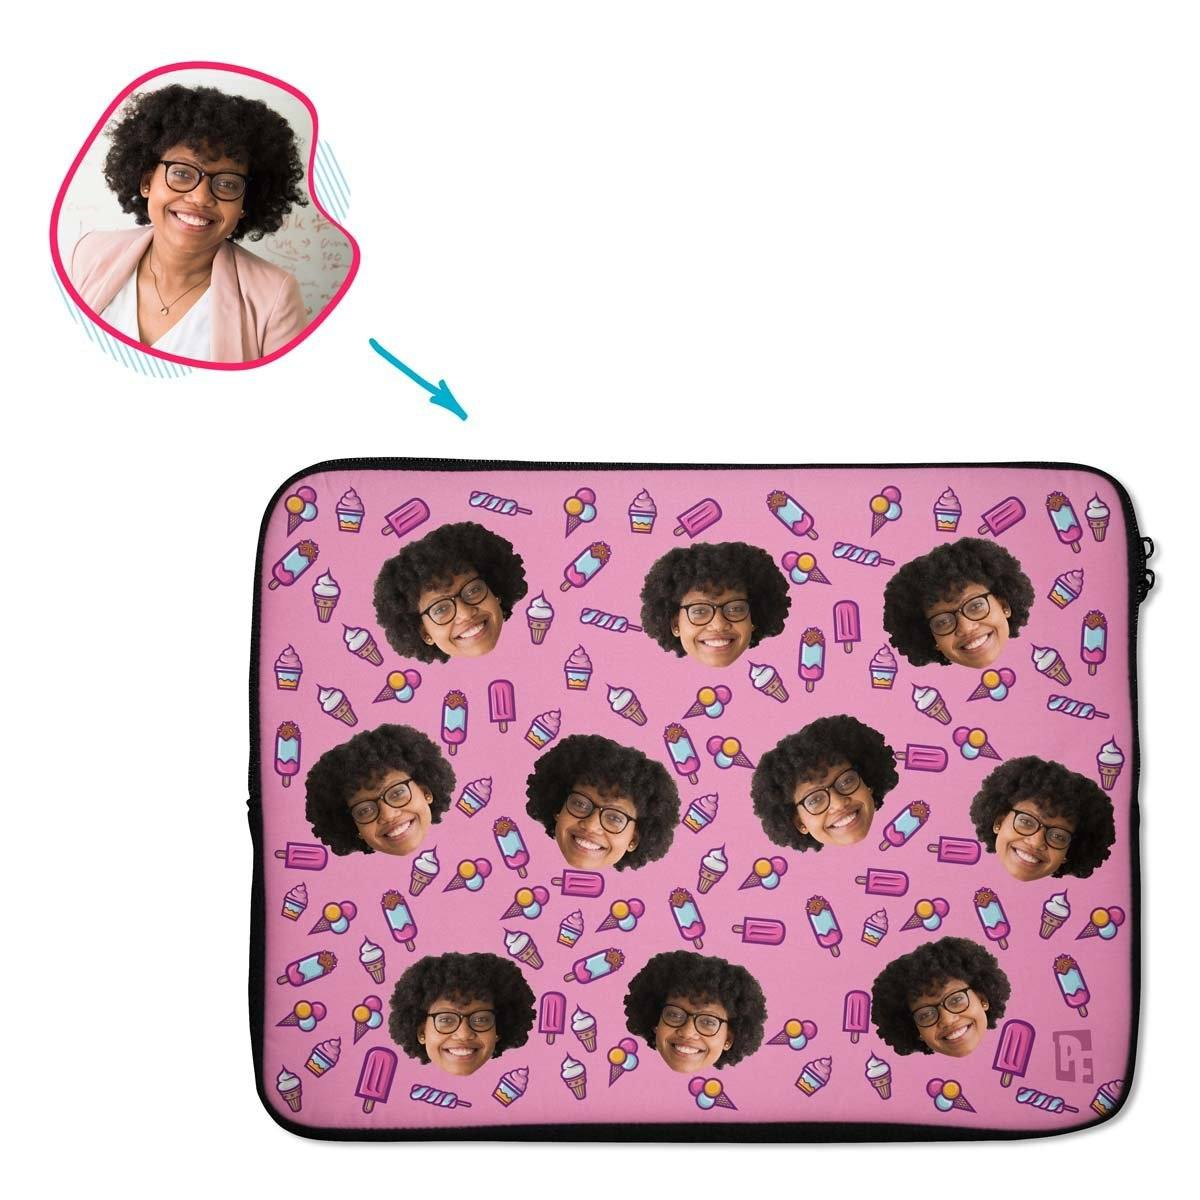 pink Candies laptop sleeve personalized with photo of face printed on them